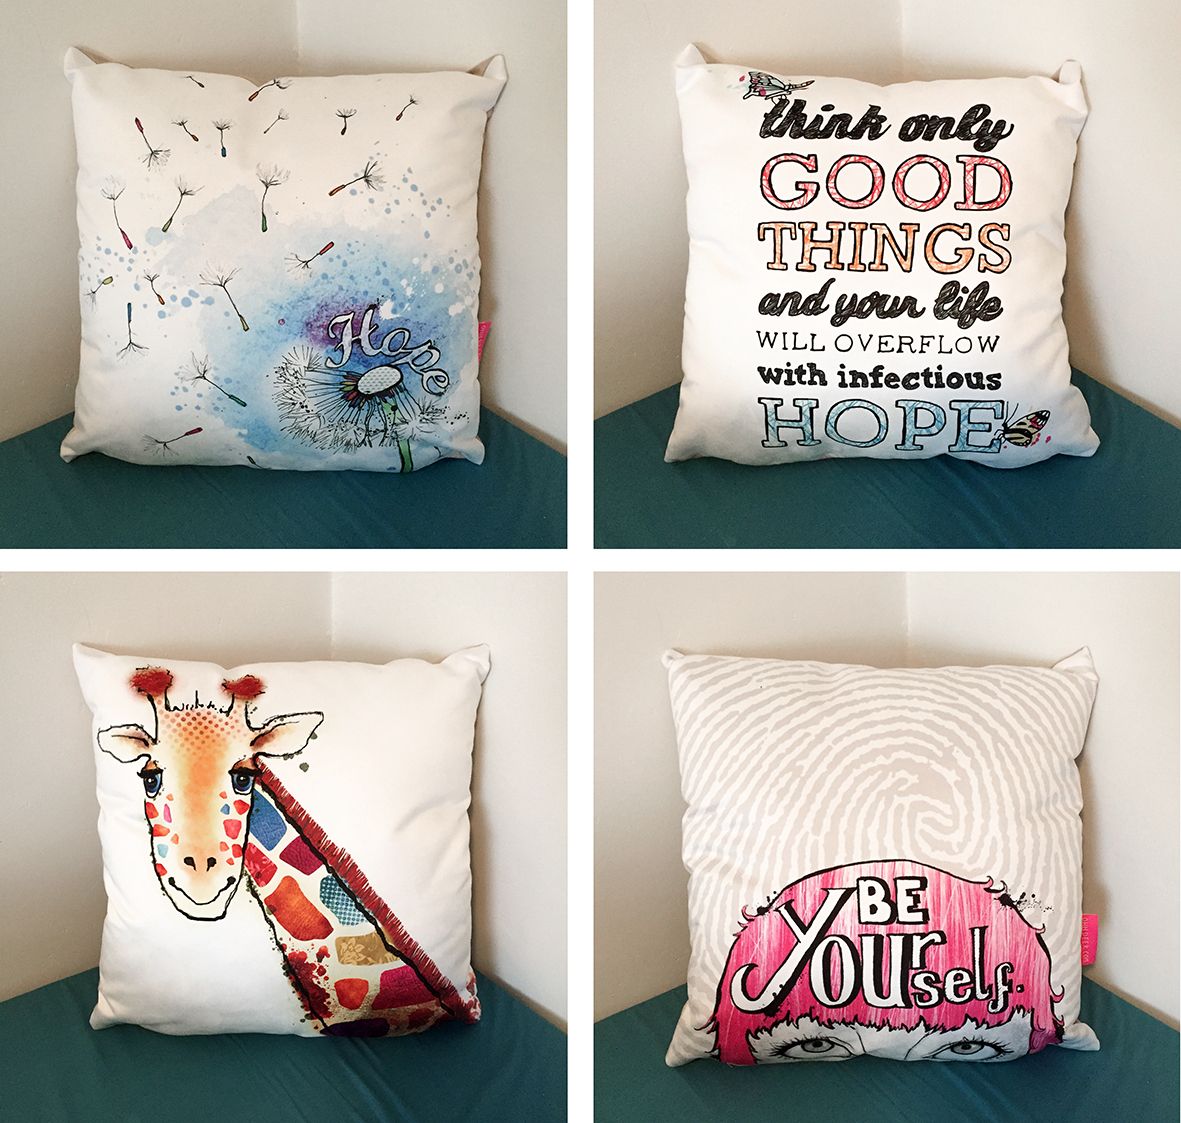 It's the last chance for you to buy my cushion designs this week! They're available until the 1st Dec. They're part of a competition so if you don't buy please vote for them so I have the chance to continue selling my work on the Ohh Deer website! Thank you!    They're available here: http://ohhdeer.com/catalogsearch/result/?q=Lisa+maltby